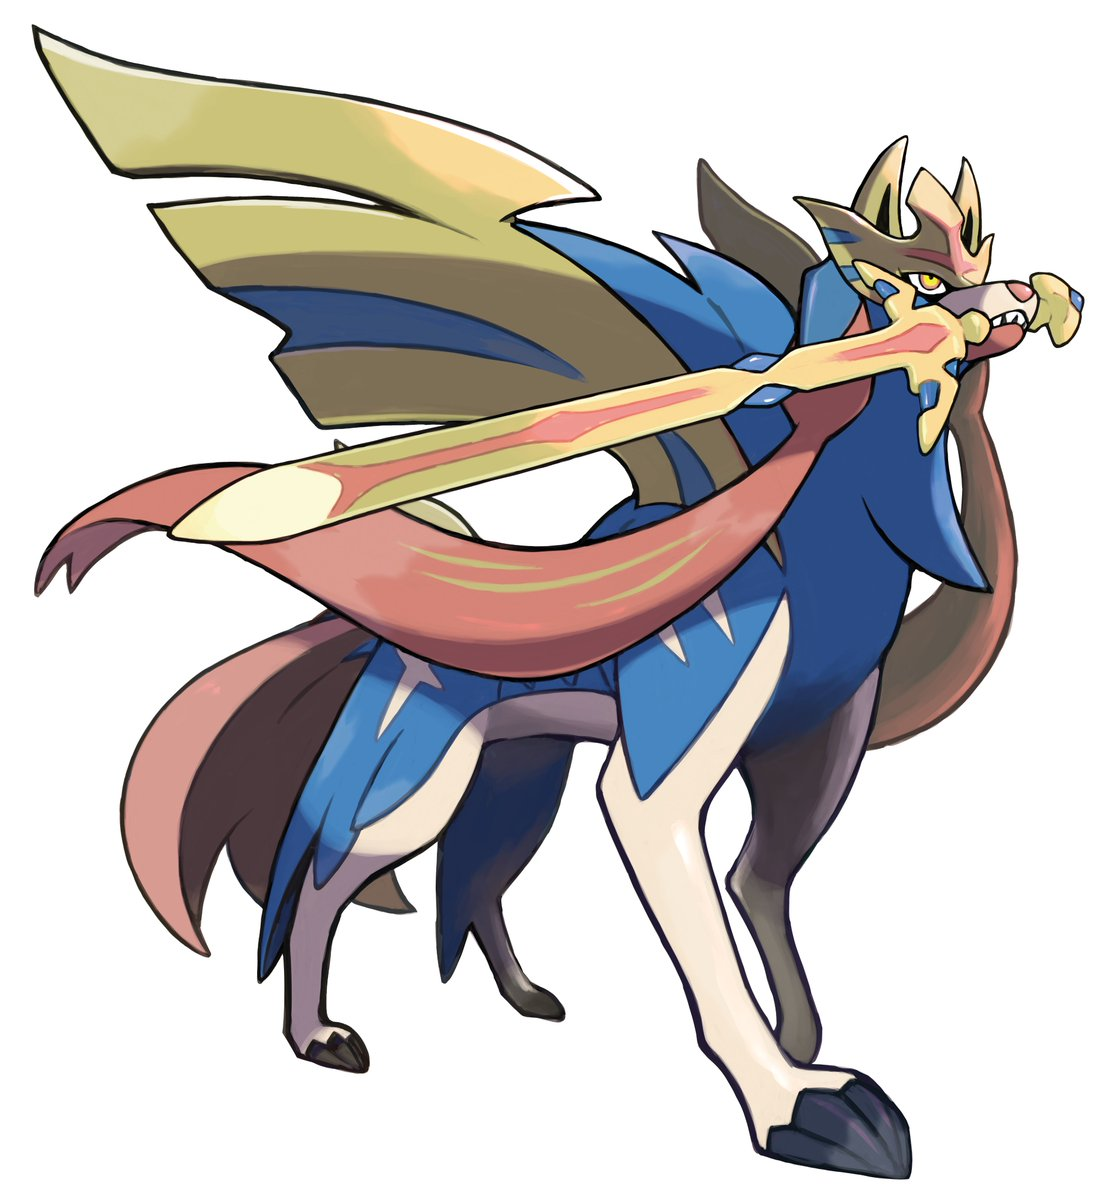 Official Artwork Of The New Legendary Pokemon Zacian In Pokemon